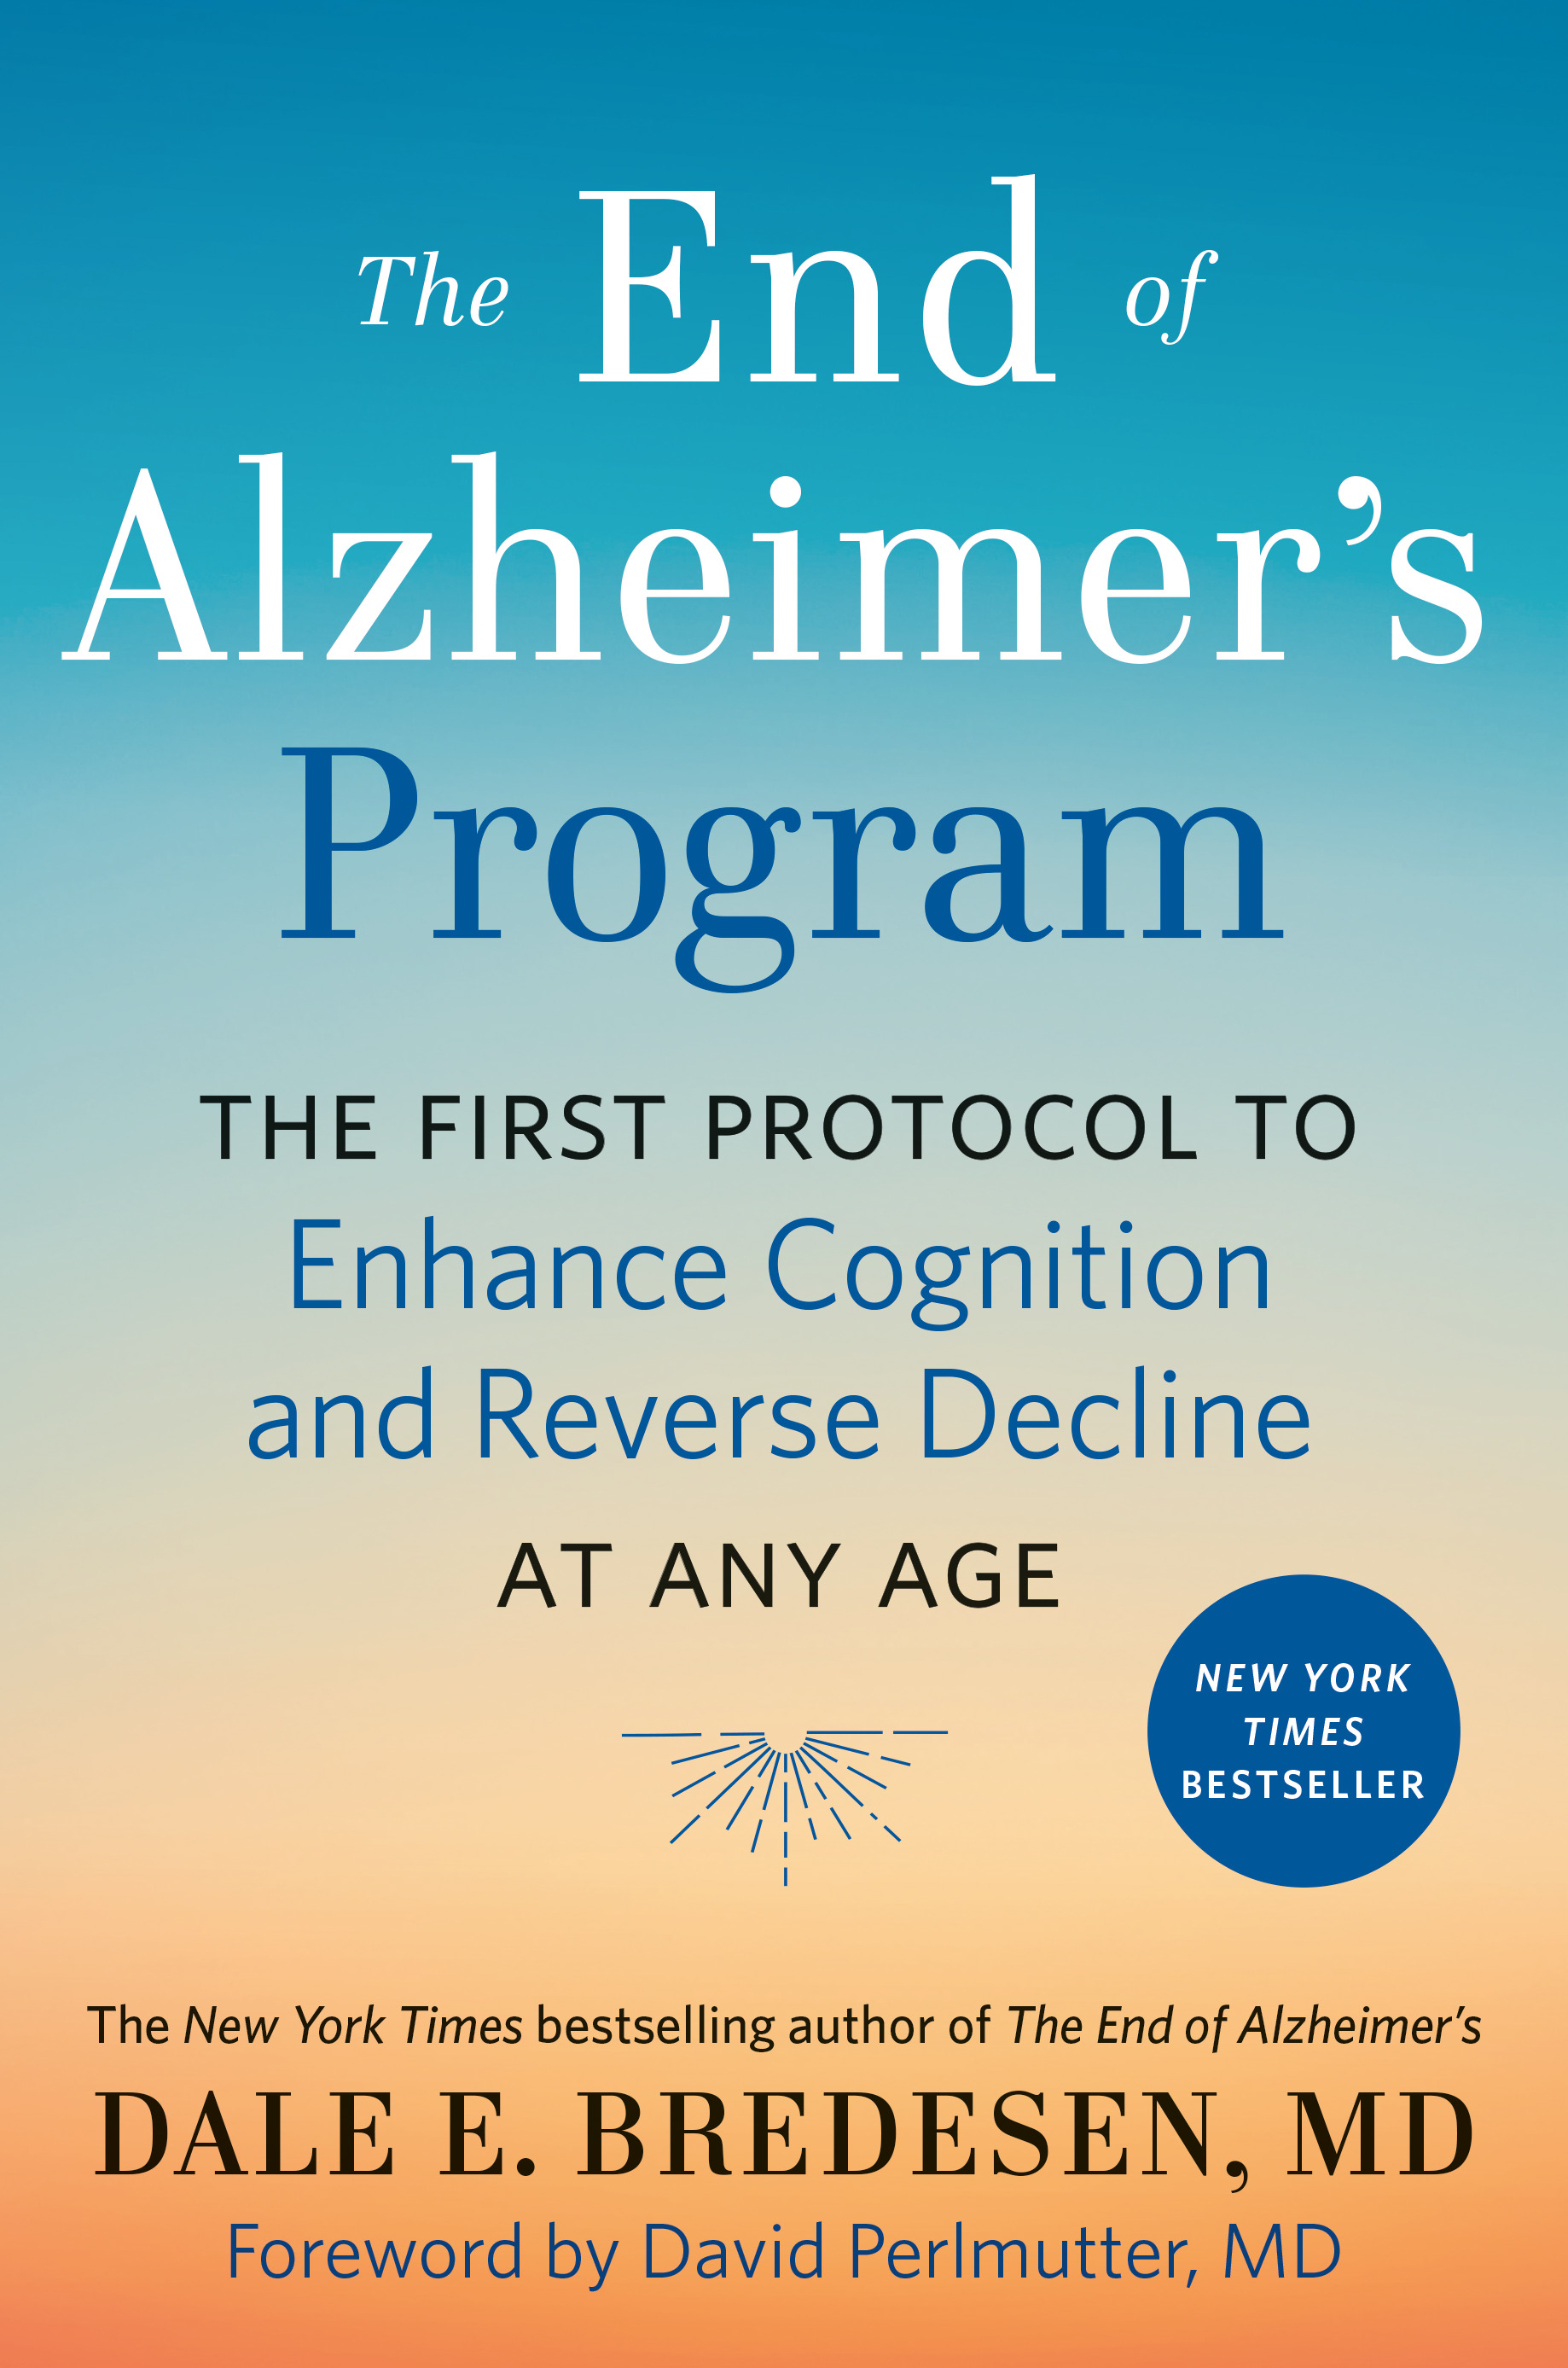 The End of Alzheimer's Program : The First Protocol to Enhance Cognition and Reverse Decline at Any Age | Health